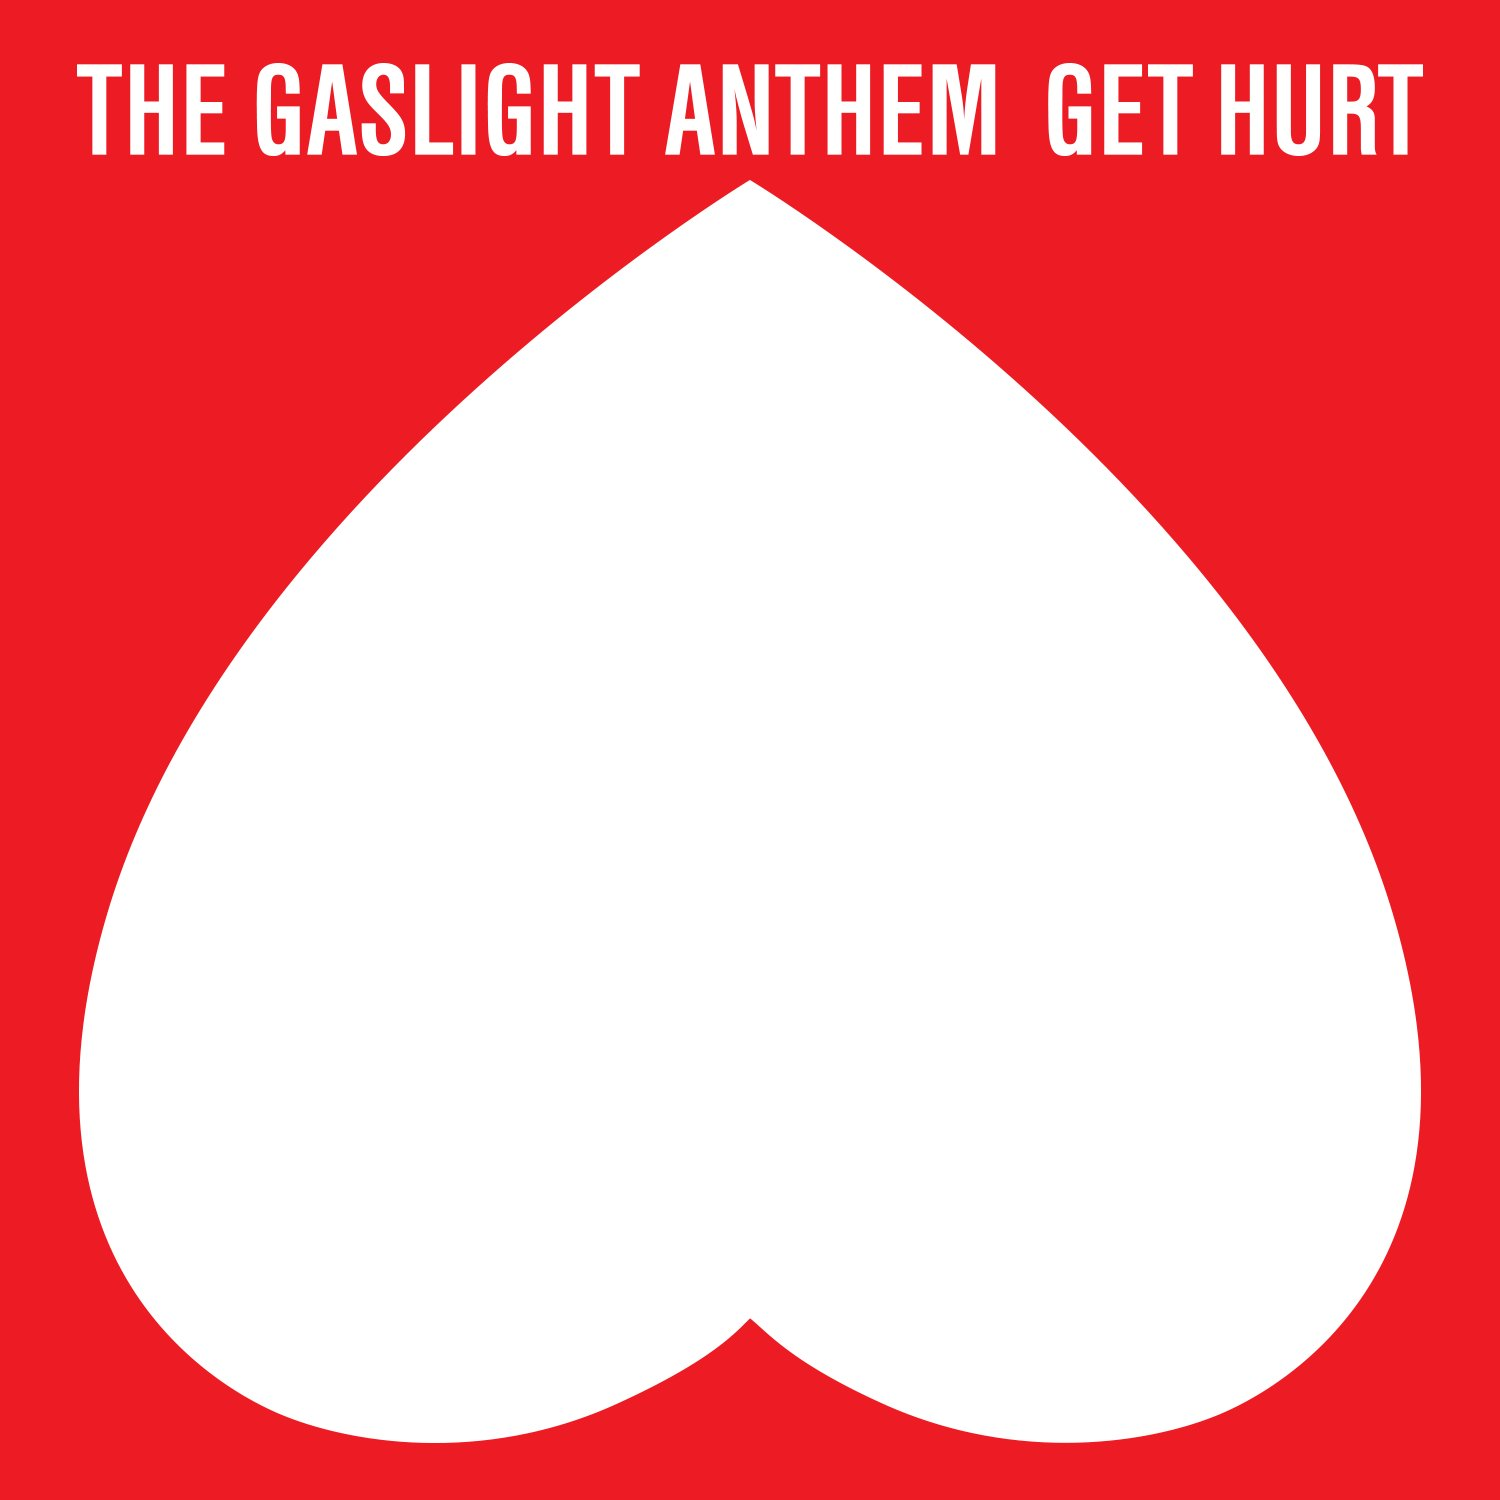 Mini Music Review : The Gaslight Anthem, Get Hurt (Deluxe Edition) (Island)